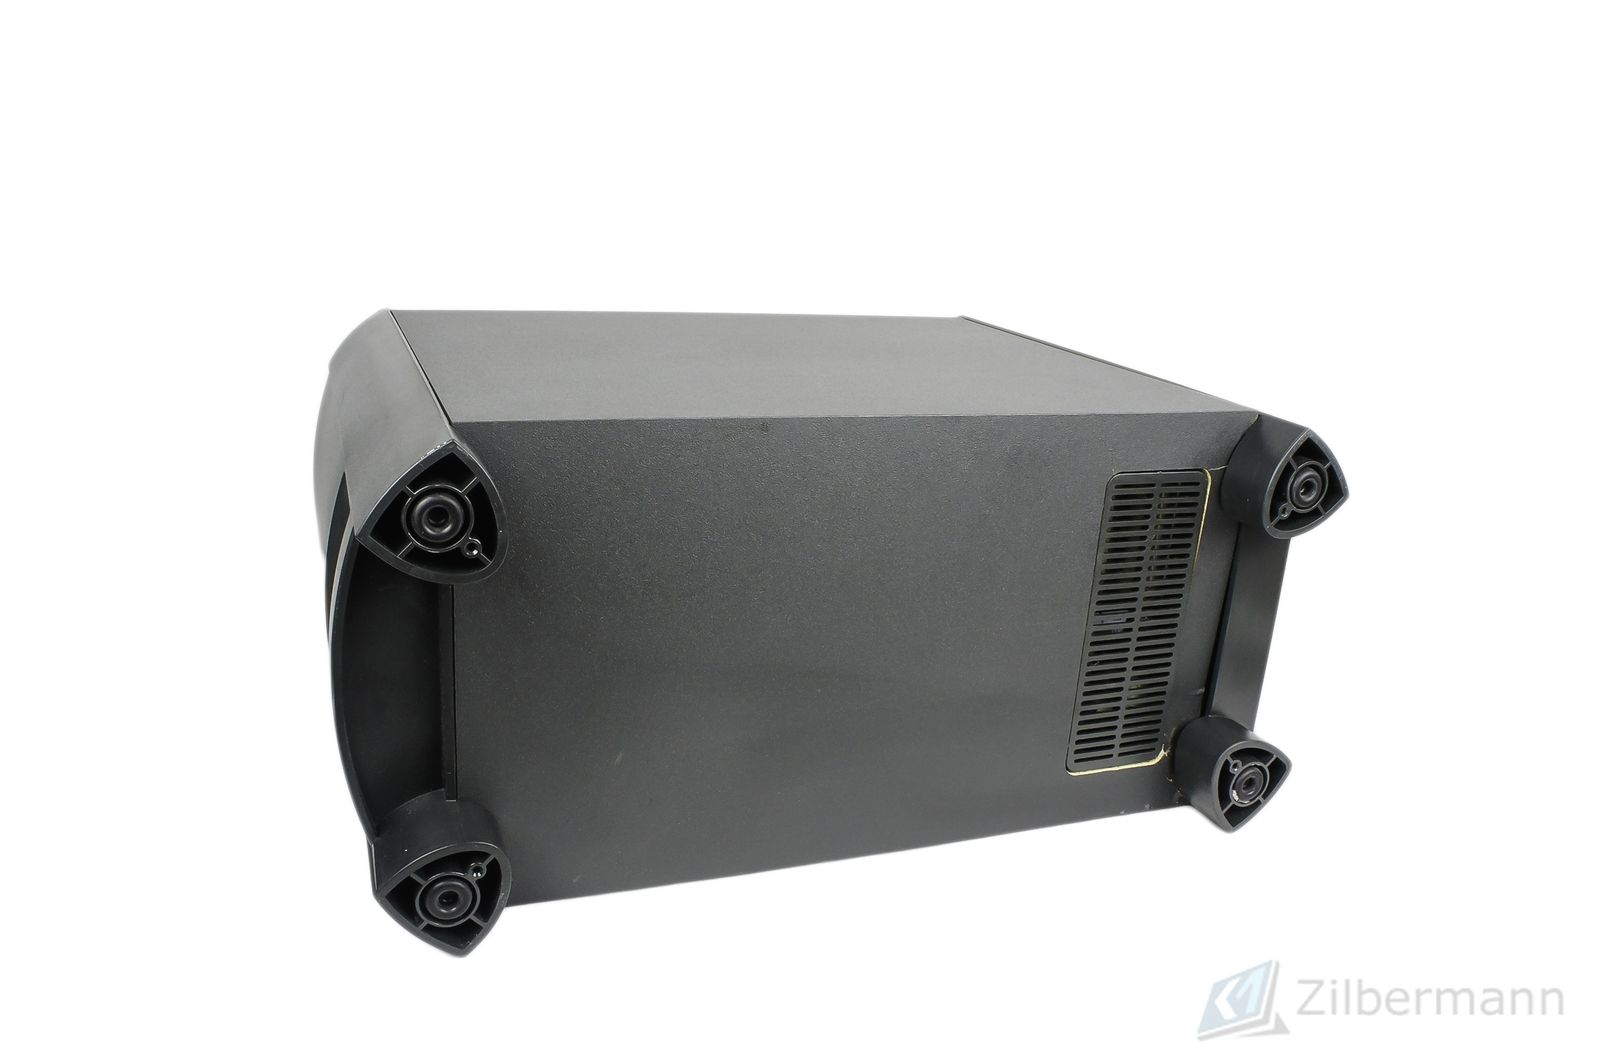 Bose_321_3-2-1_Series_III_Powered_Subwoofer_05